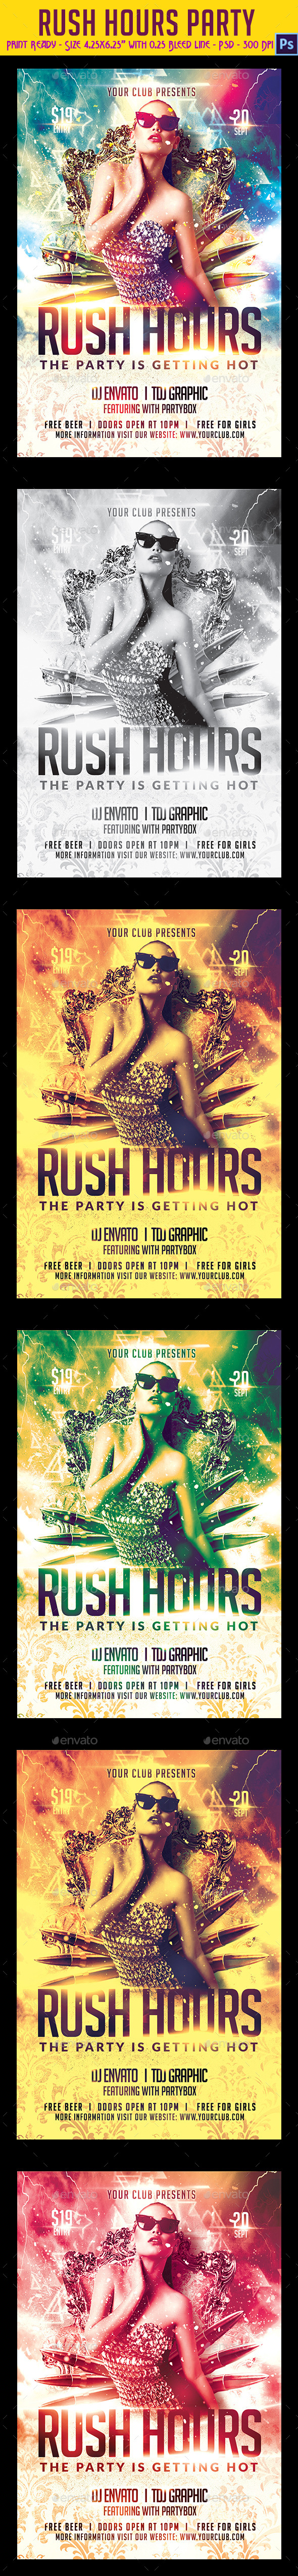 GraphicRiver Rush Hours Party Flyer 9025058